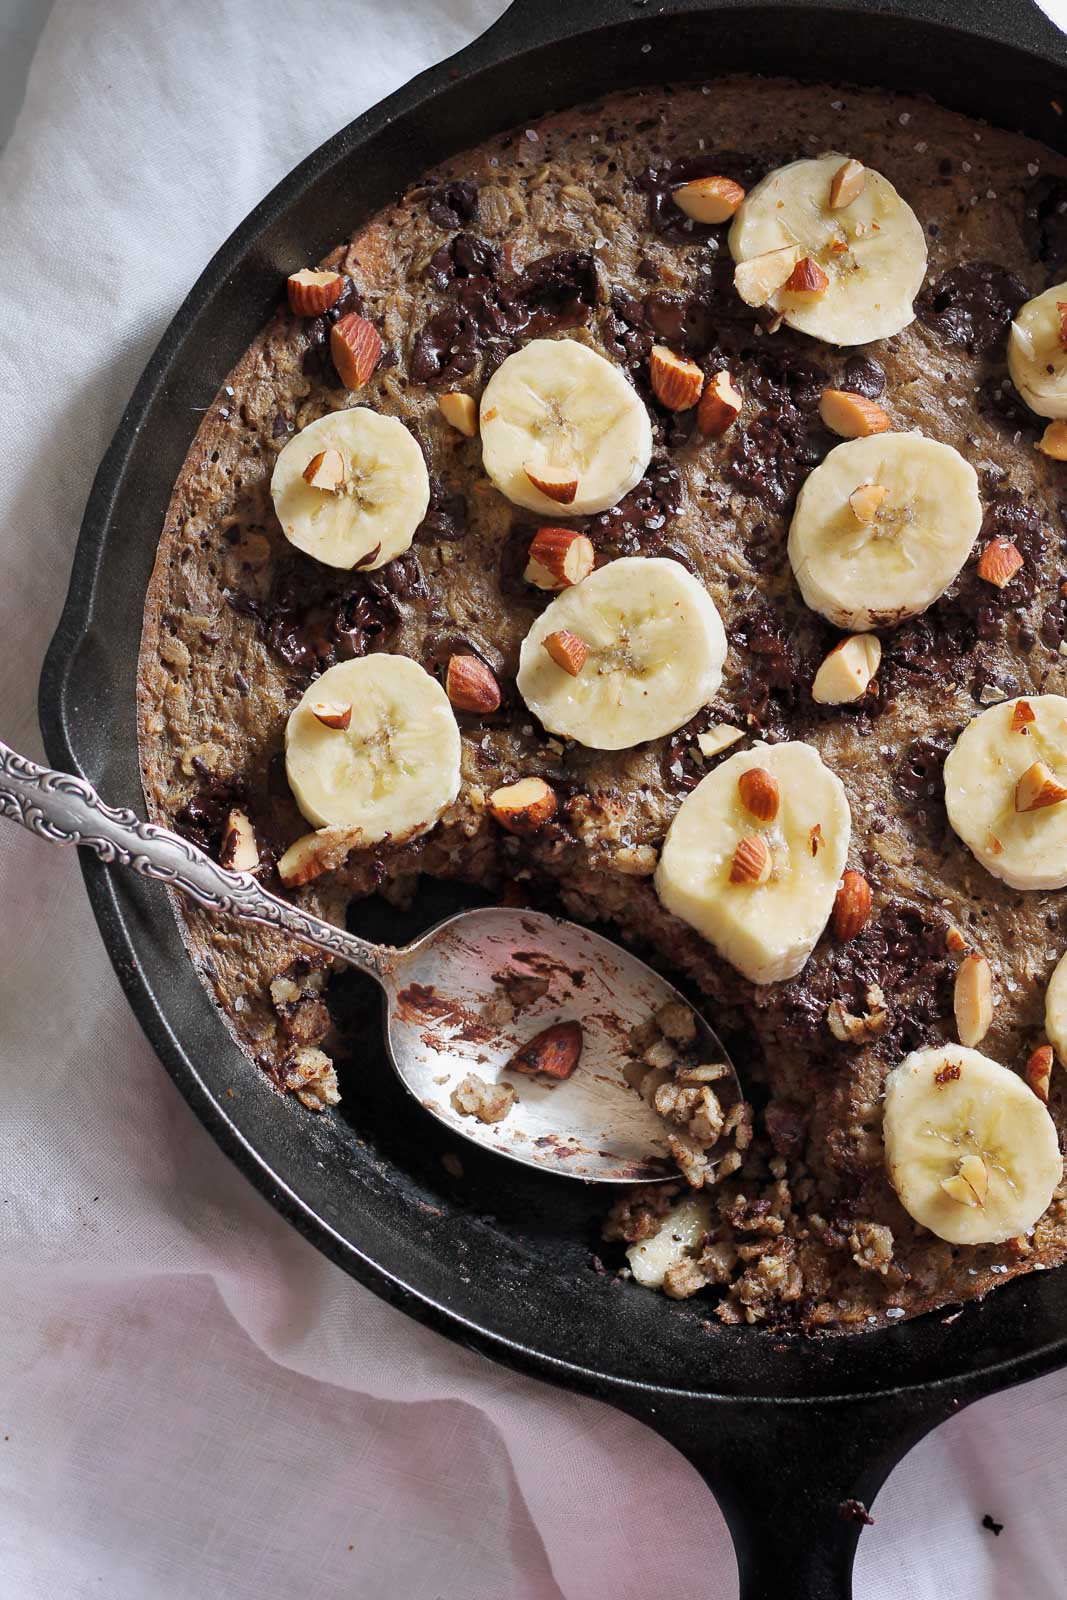 banana baked oatmeal with chocolate and roasted almonds in a skillet